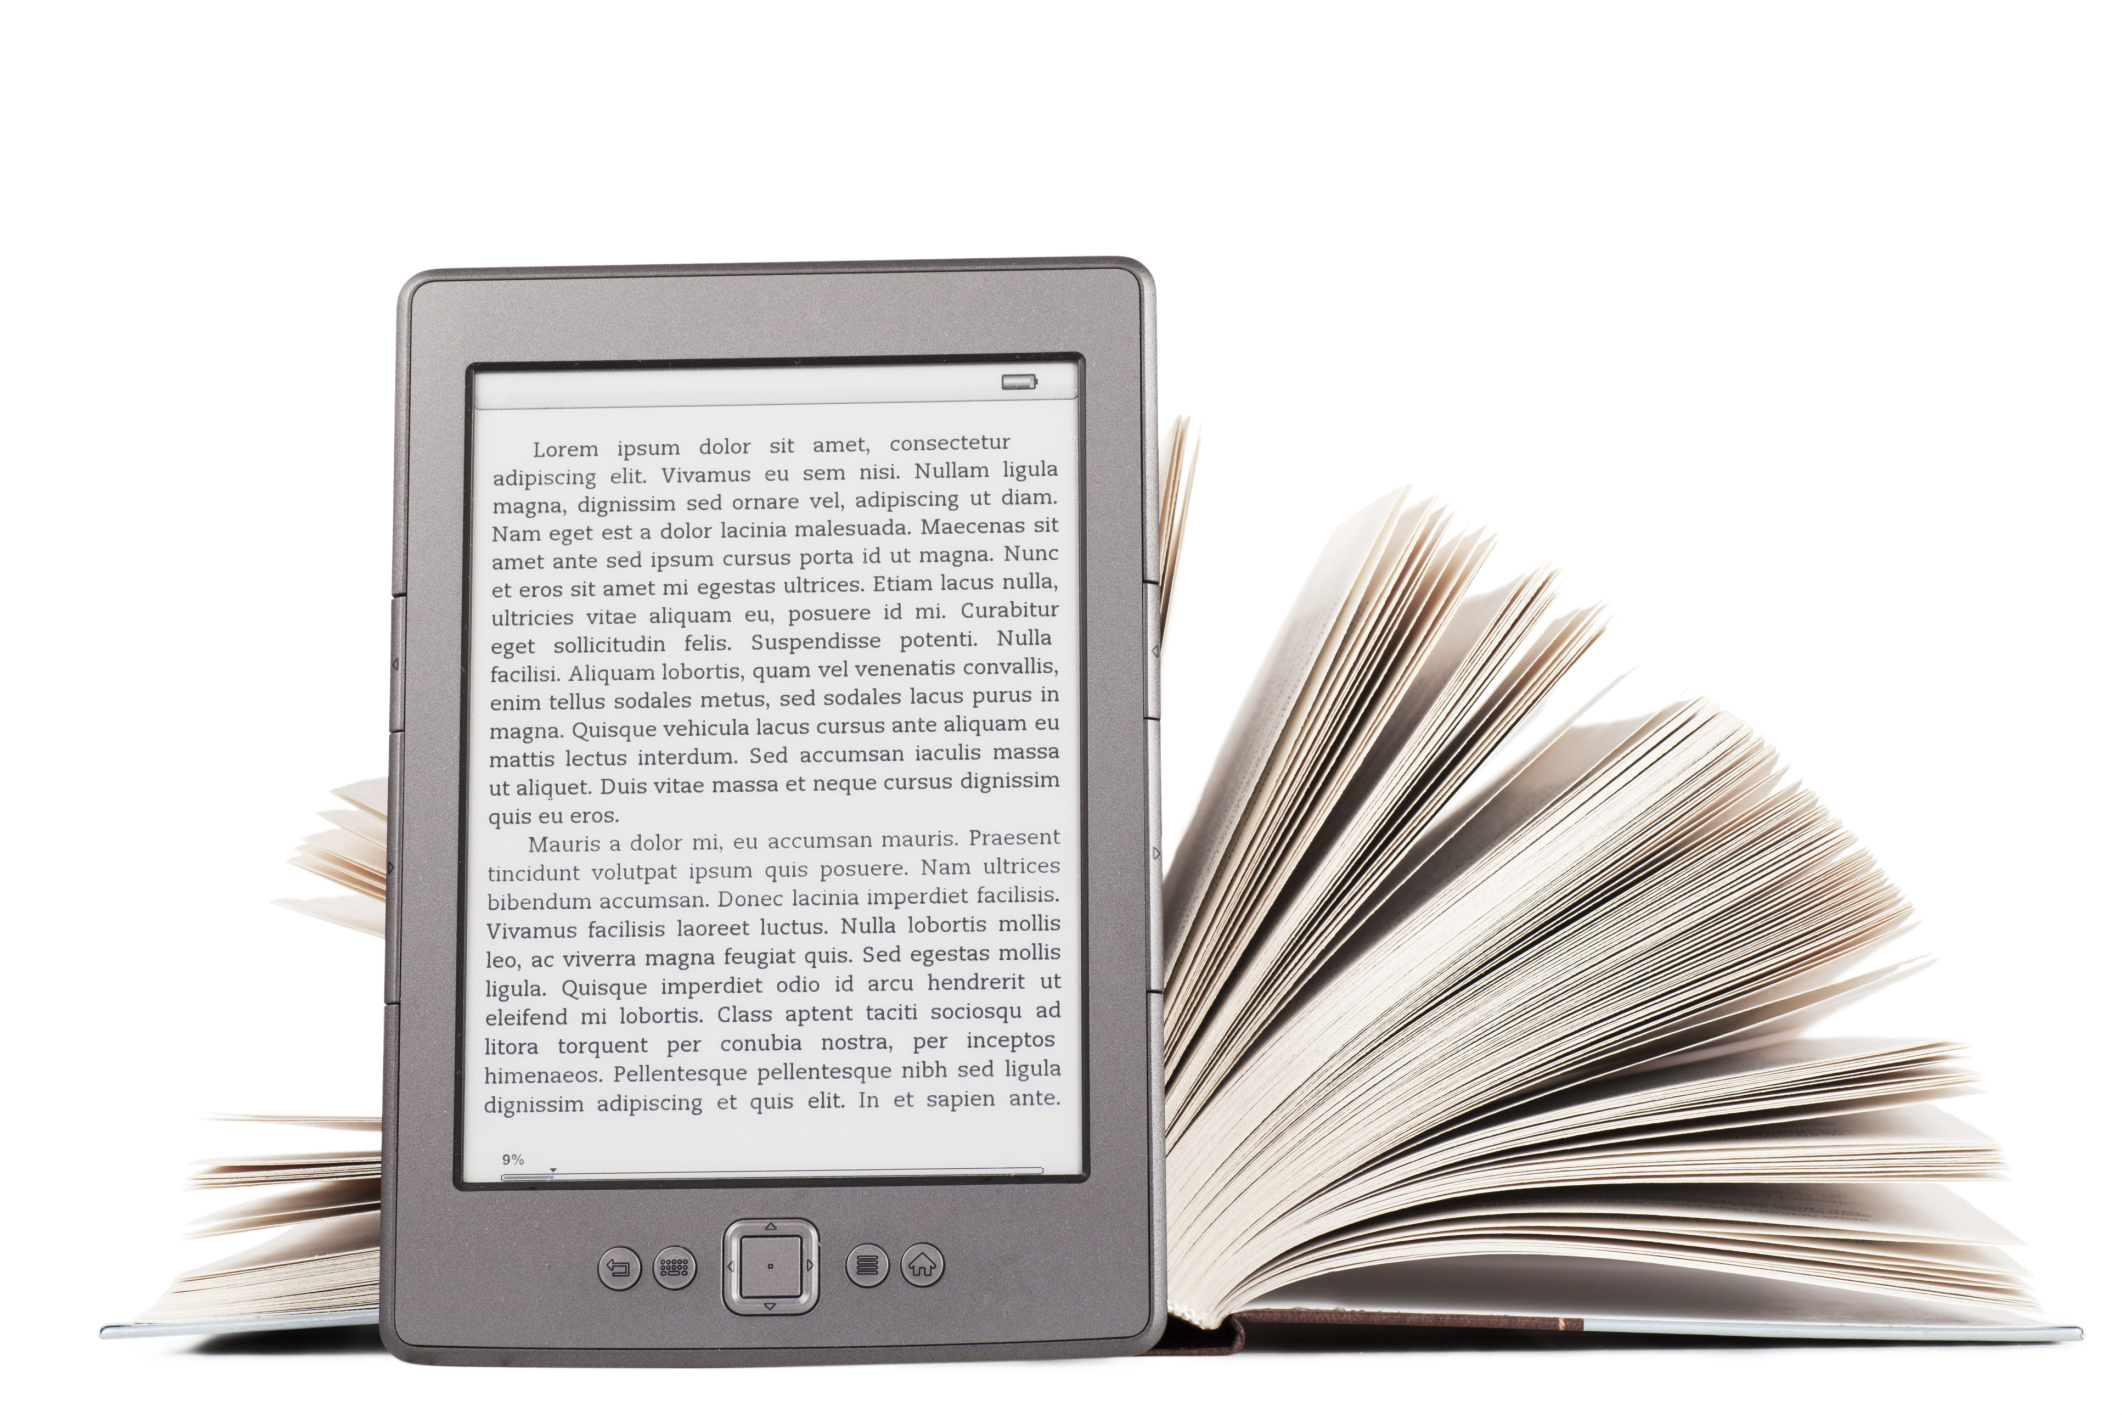 How to Transfer Books From a Kindle to a Nook | It Still Works